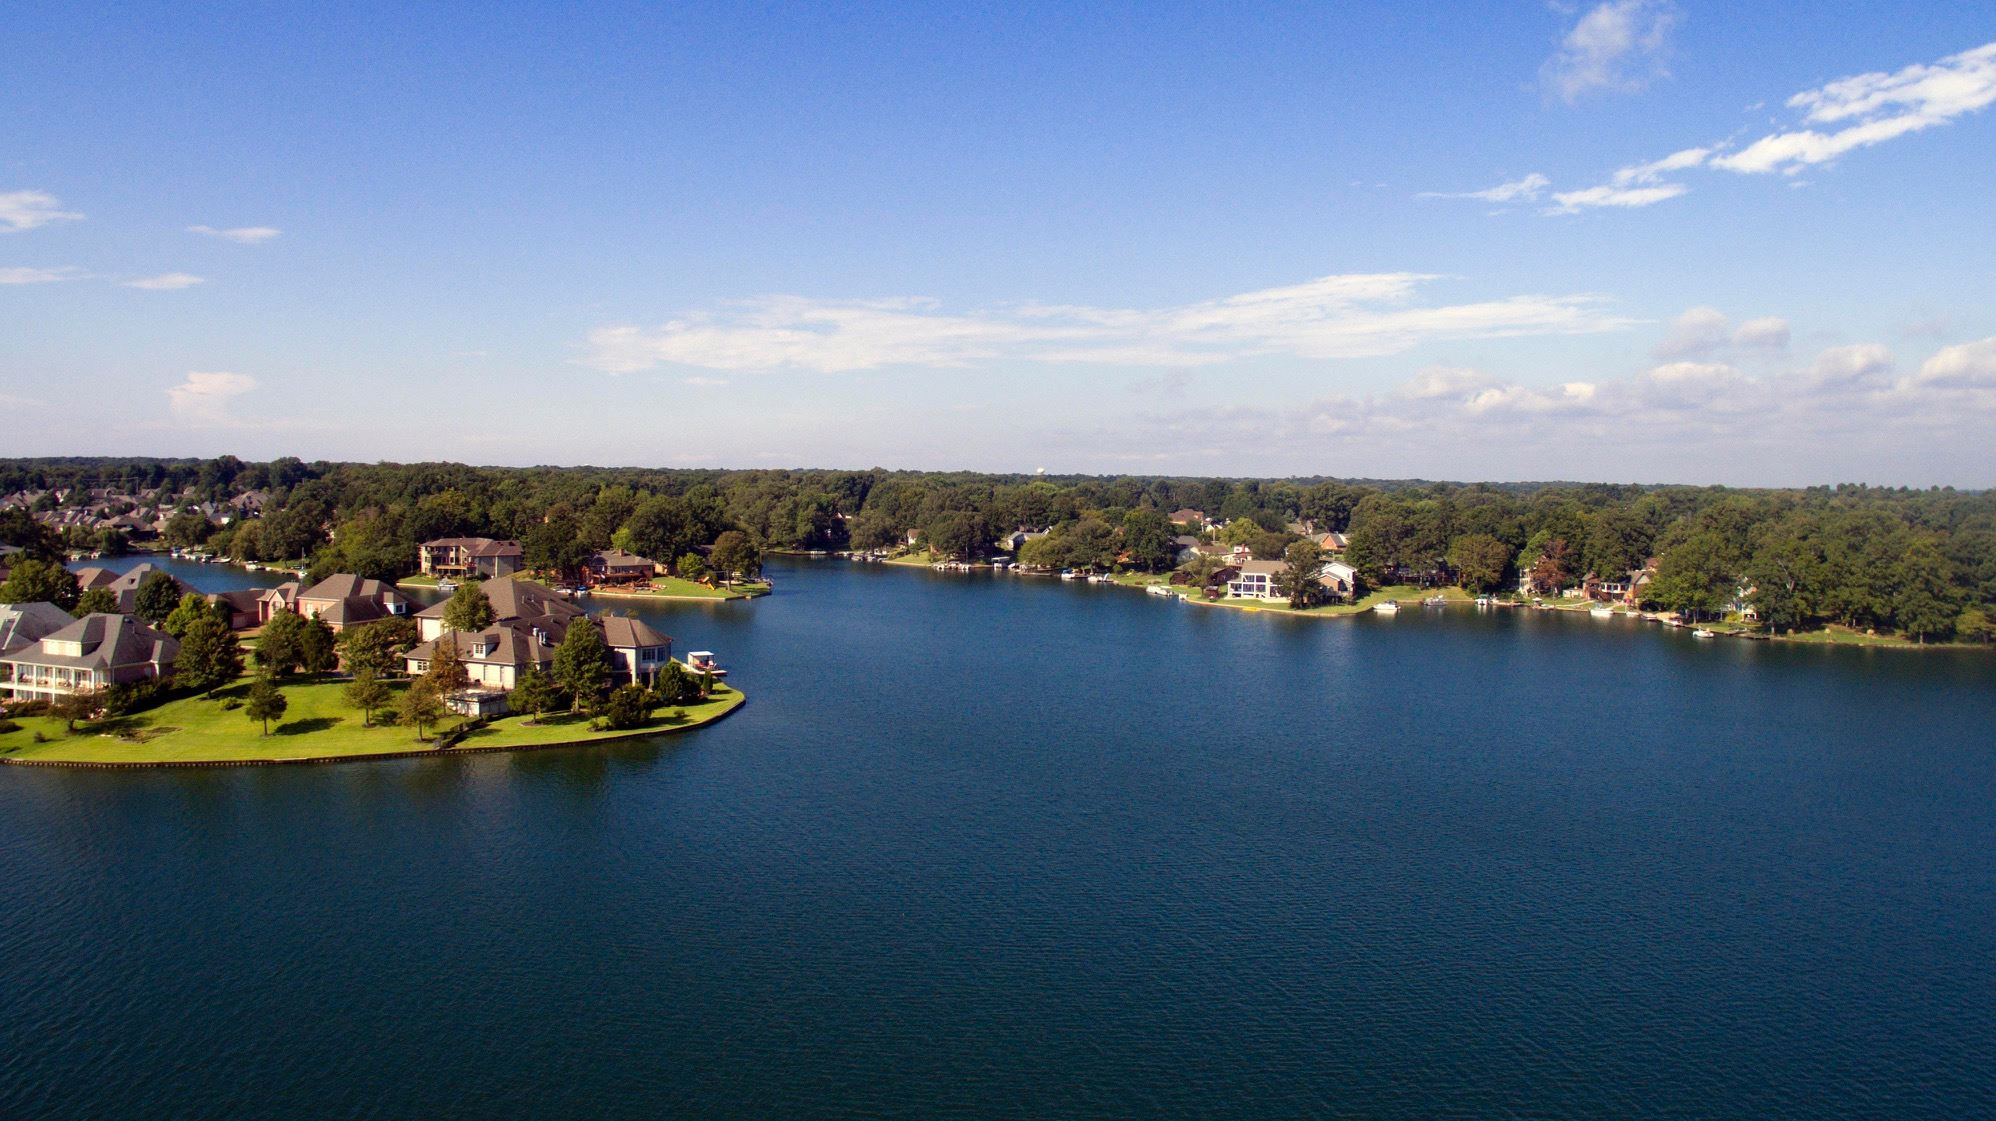 Garner Lake photo by Chip Averwater